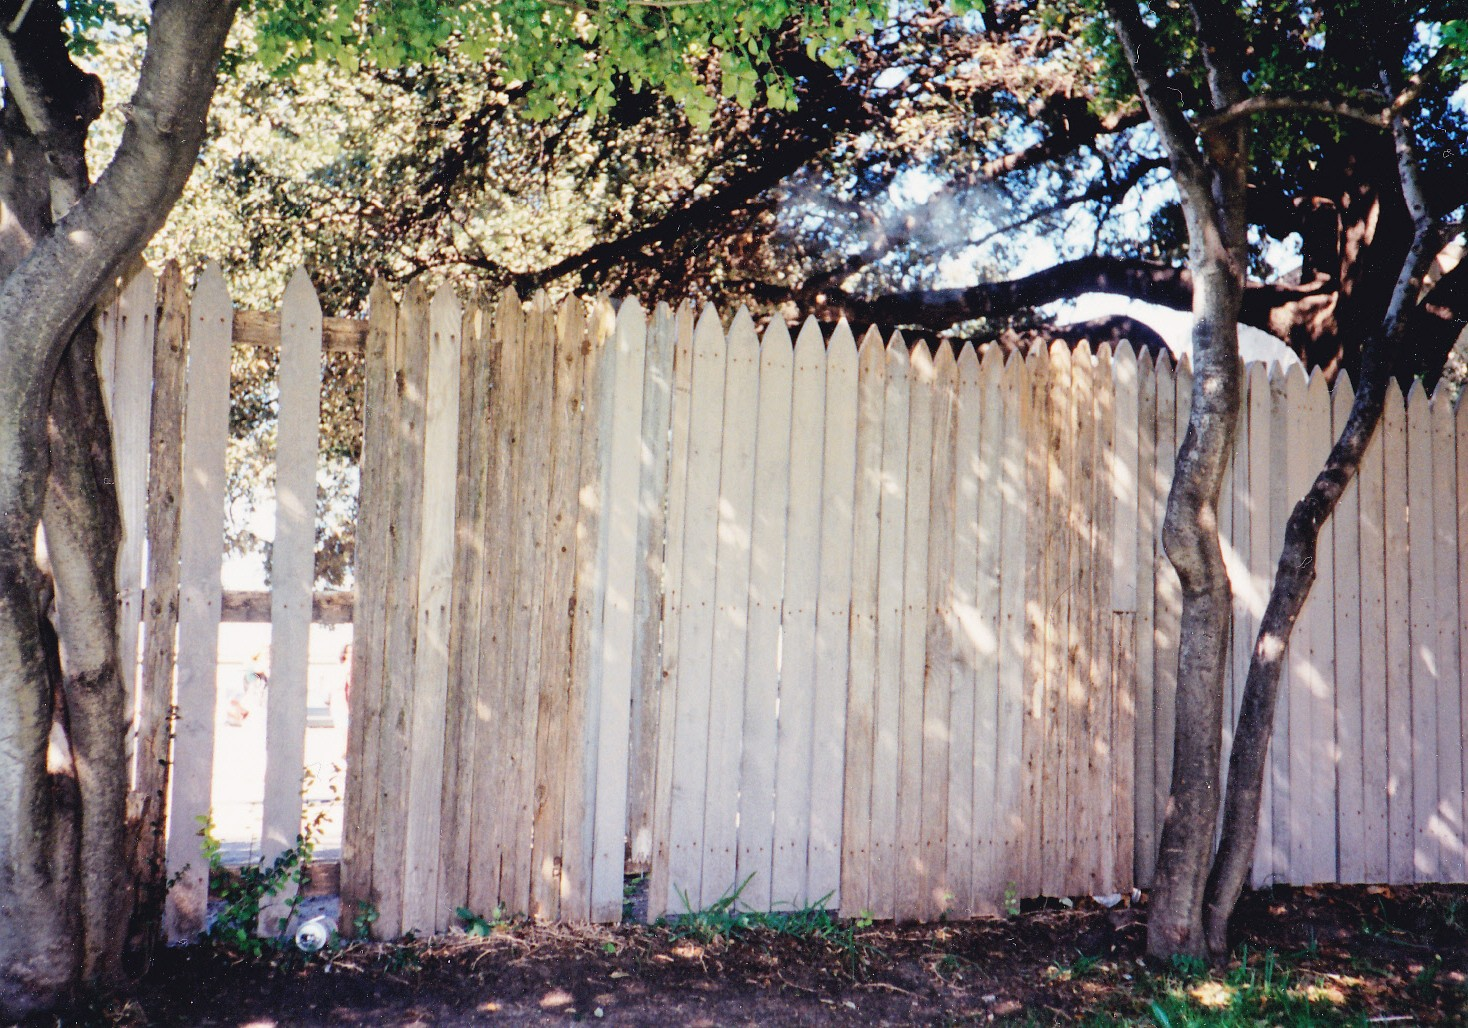 Wooden fence behind grassy knoll where kill shot came from